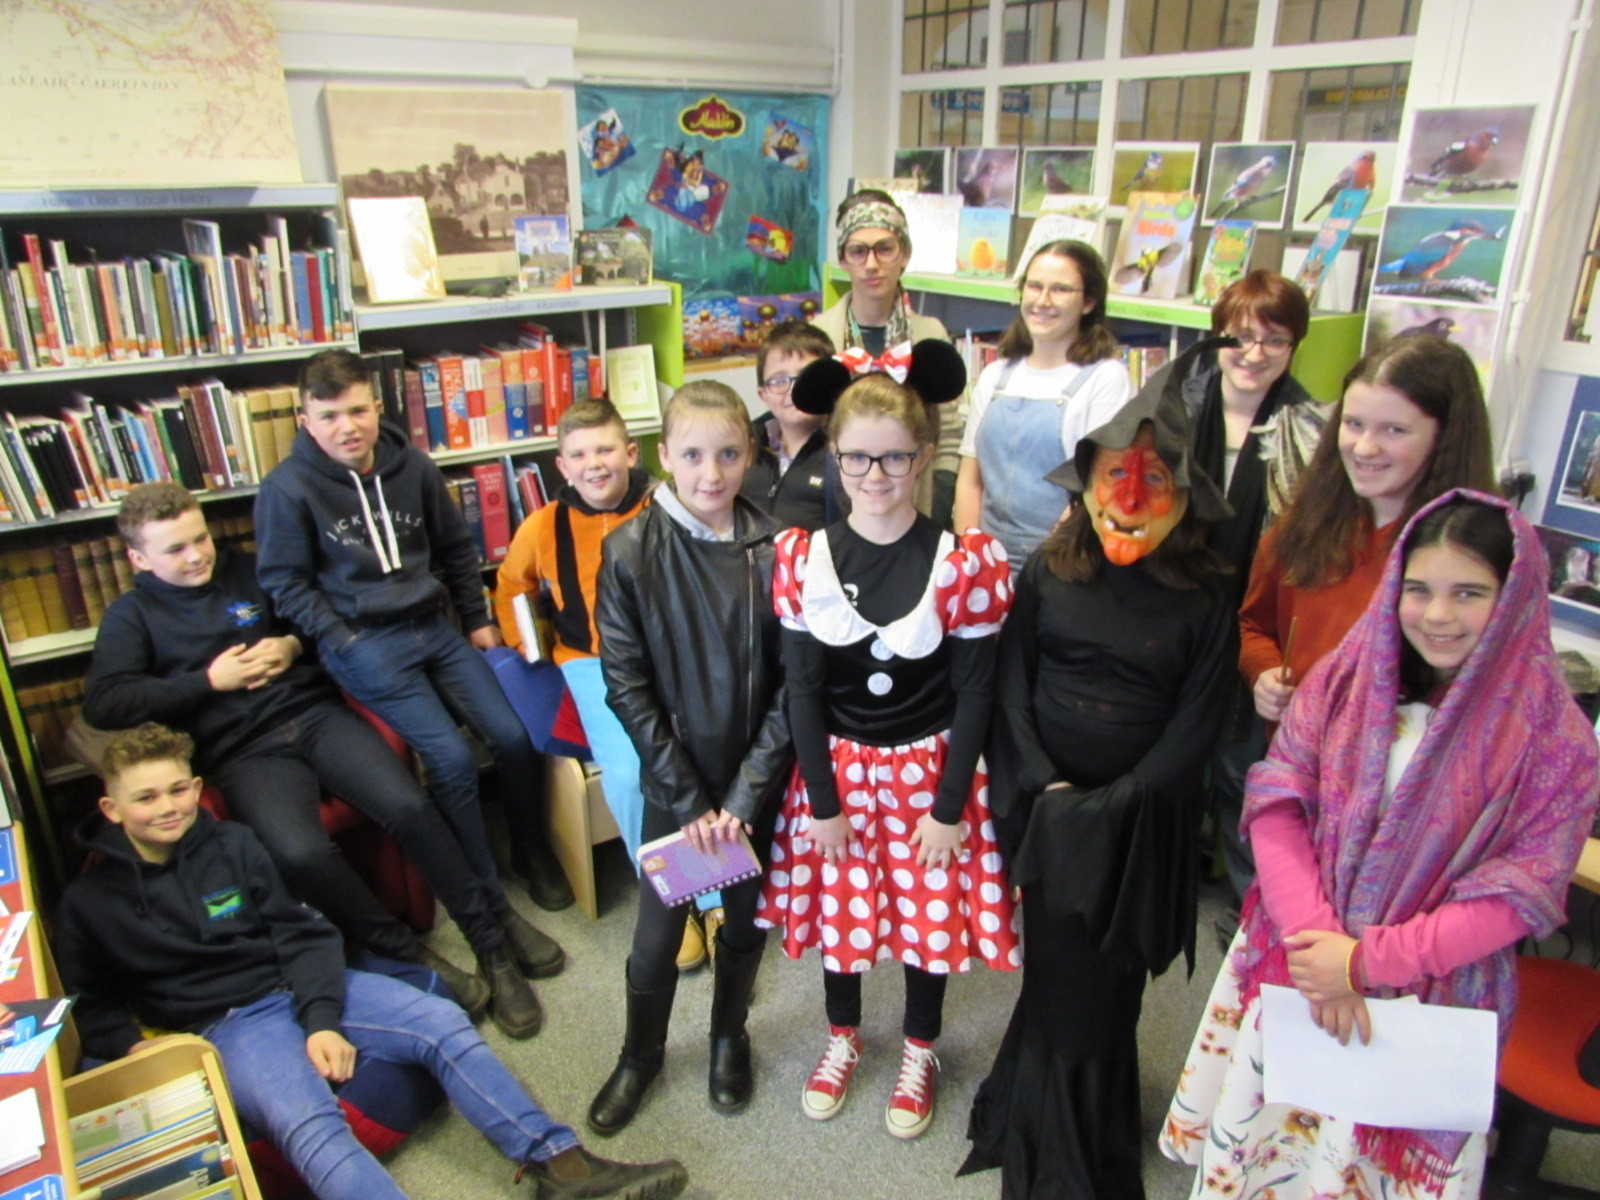 Caereinion High School pupils dress the part for World Book Day at Llanfair Caereinion Library on Thursday, March 7.